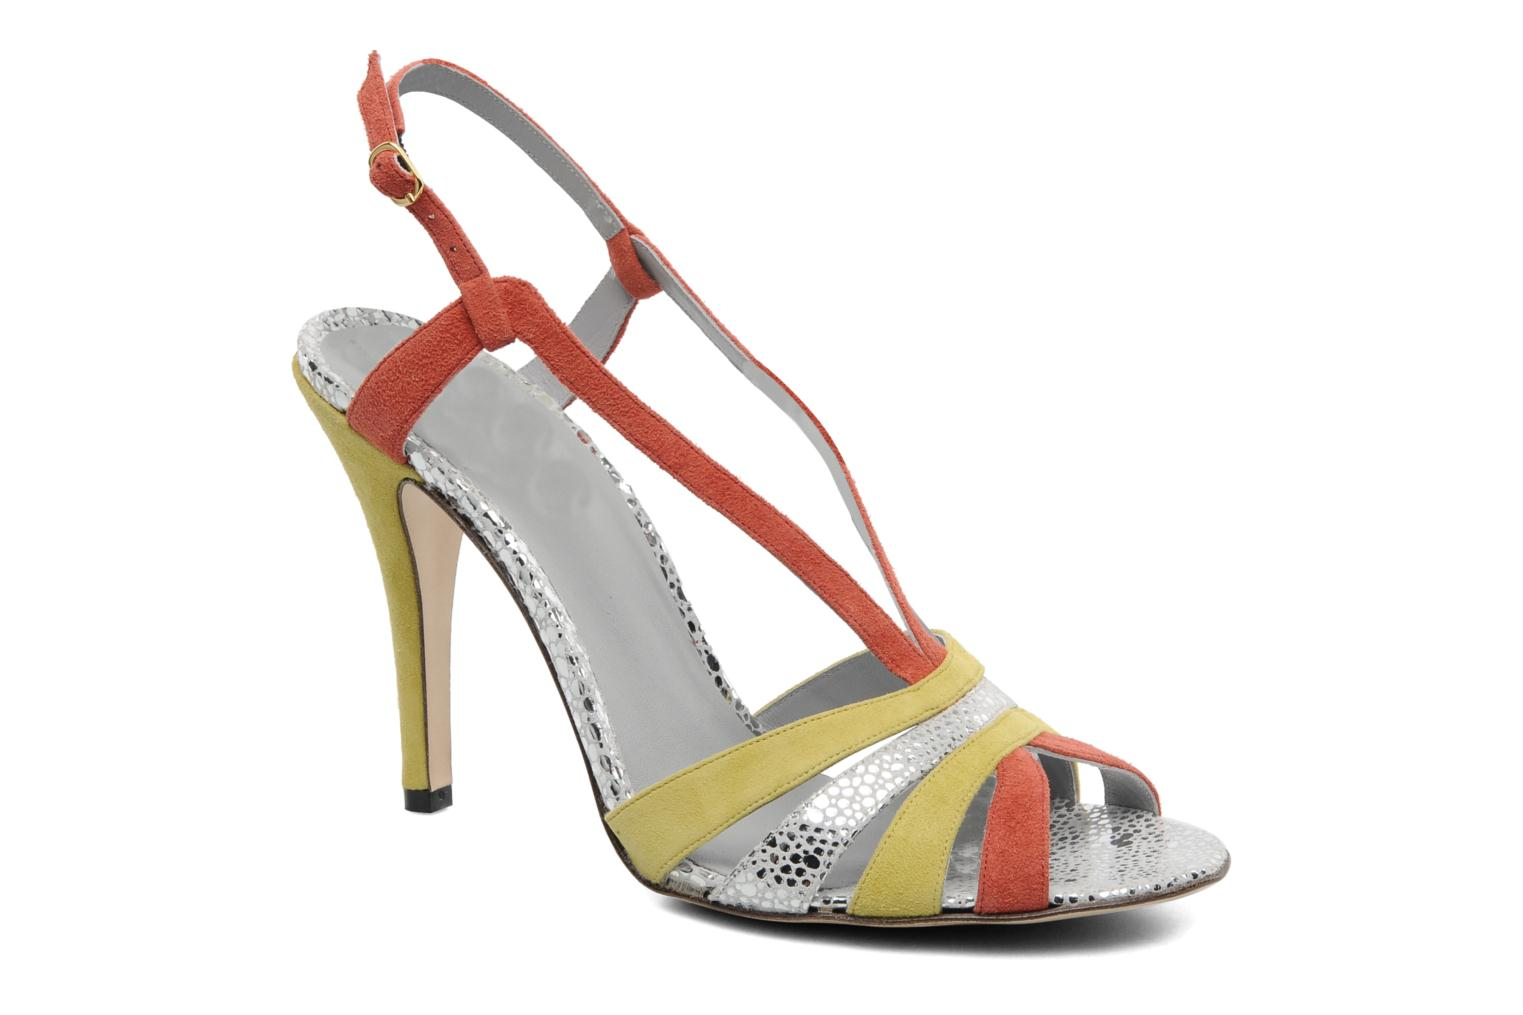 Marques Chaussure luxe femme Fred Marzo femme Josy Caviar Argent Velours Grenade Passion